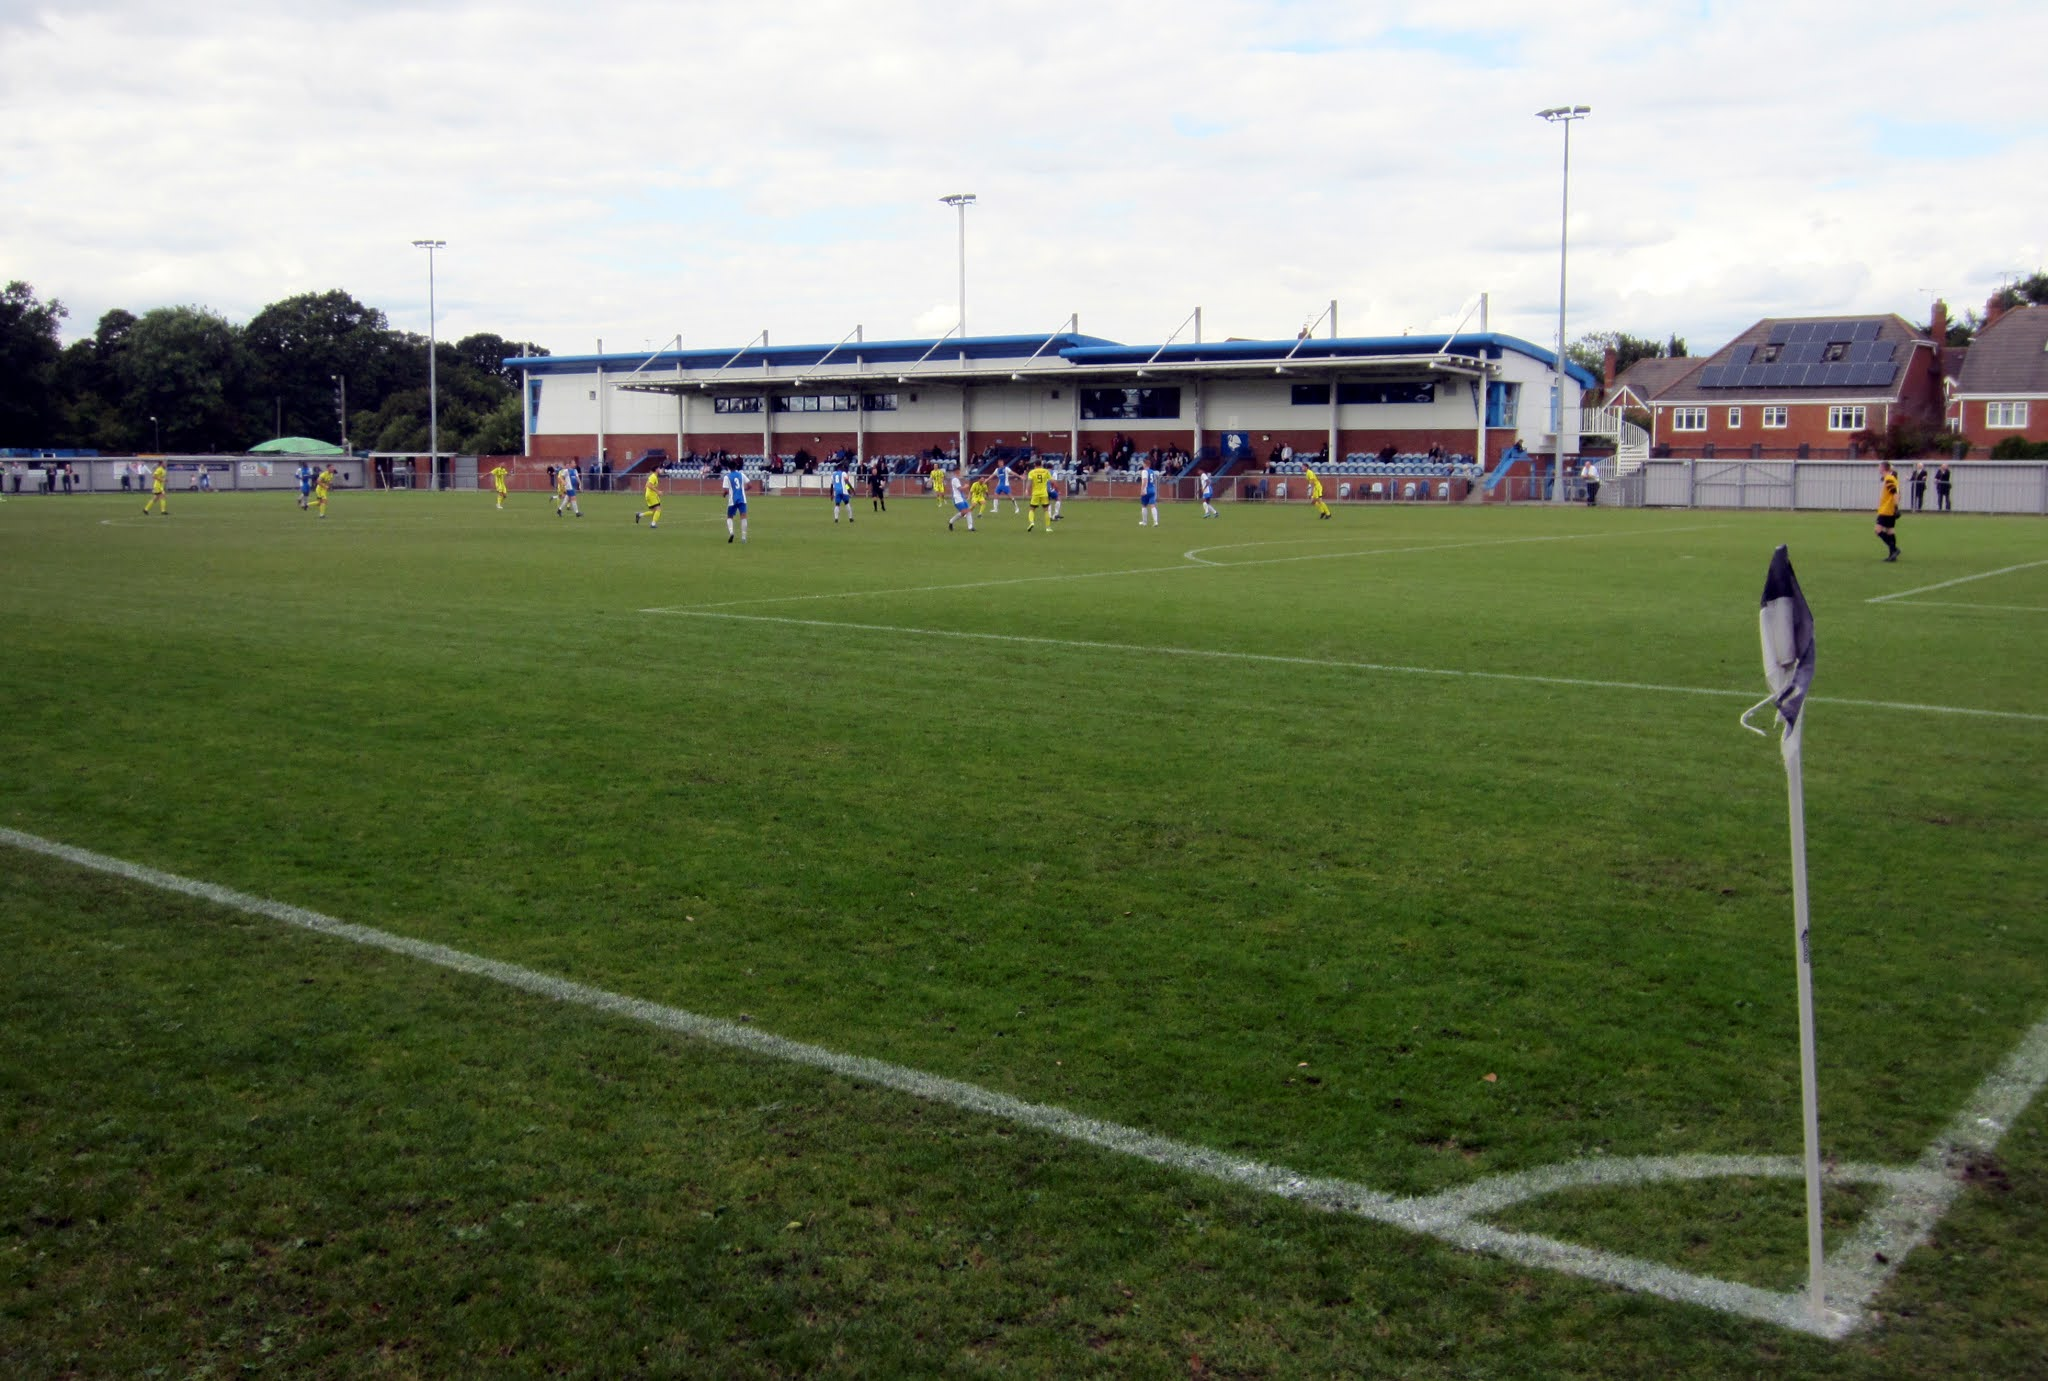 Looking towards the main stand at The Gore in Burnham